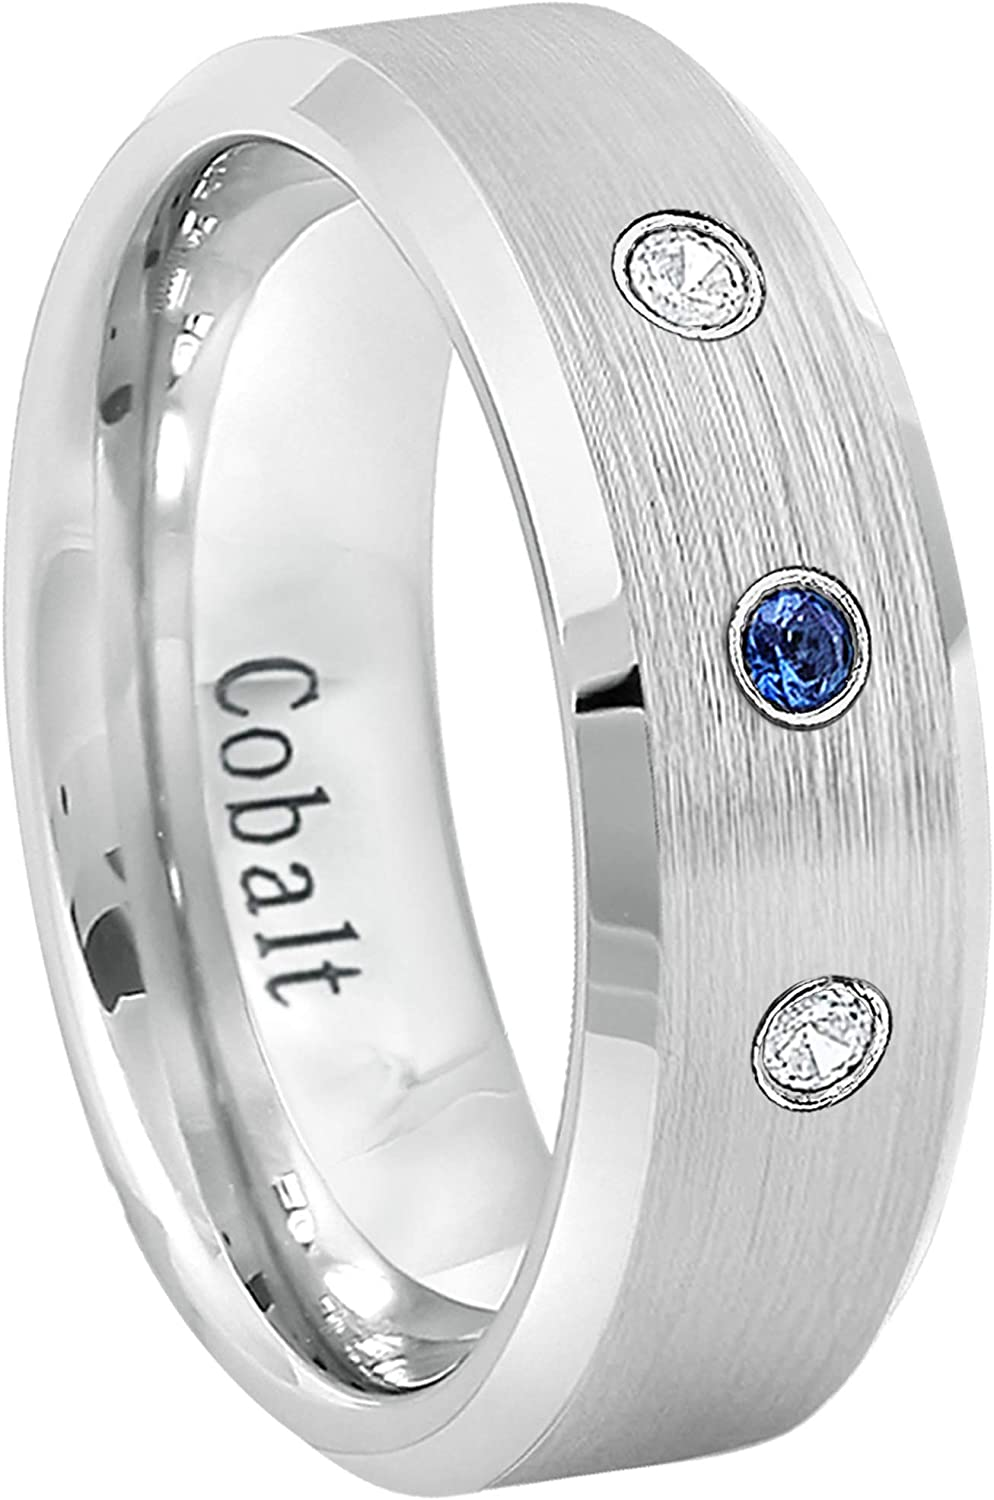 Engagement Band September Birthstone Ring 8mm Polished Comfort Fit Classic Dome Cobalt Chrome Wedding Band Anniversary Ring Jewelry Avalanche 0.21ctw Yellow Sapphire 3-Stone Ring